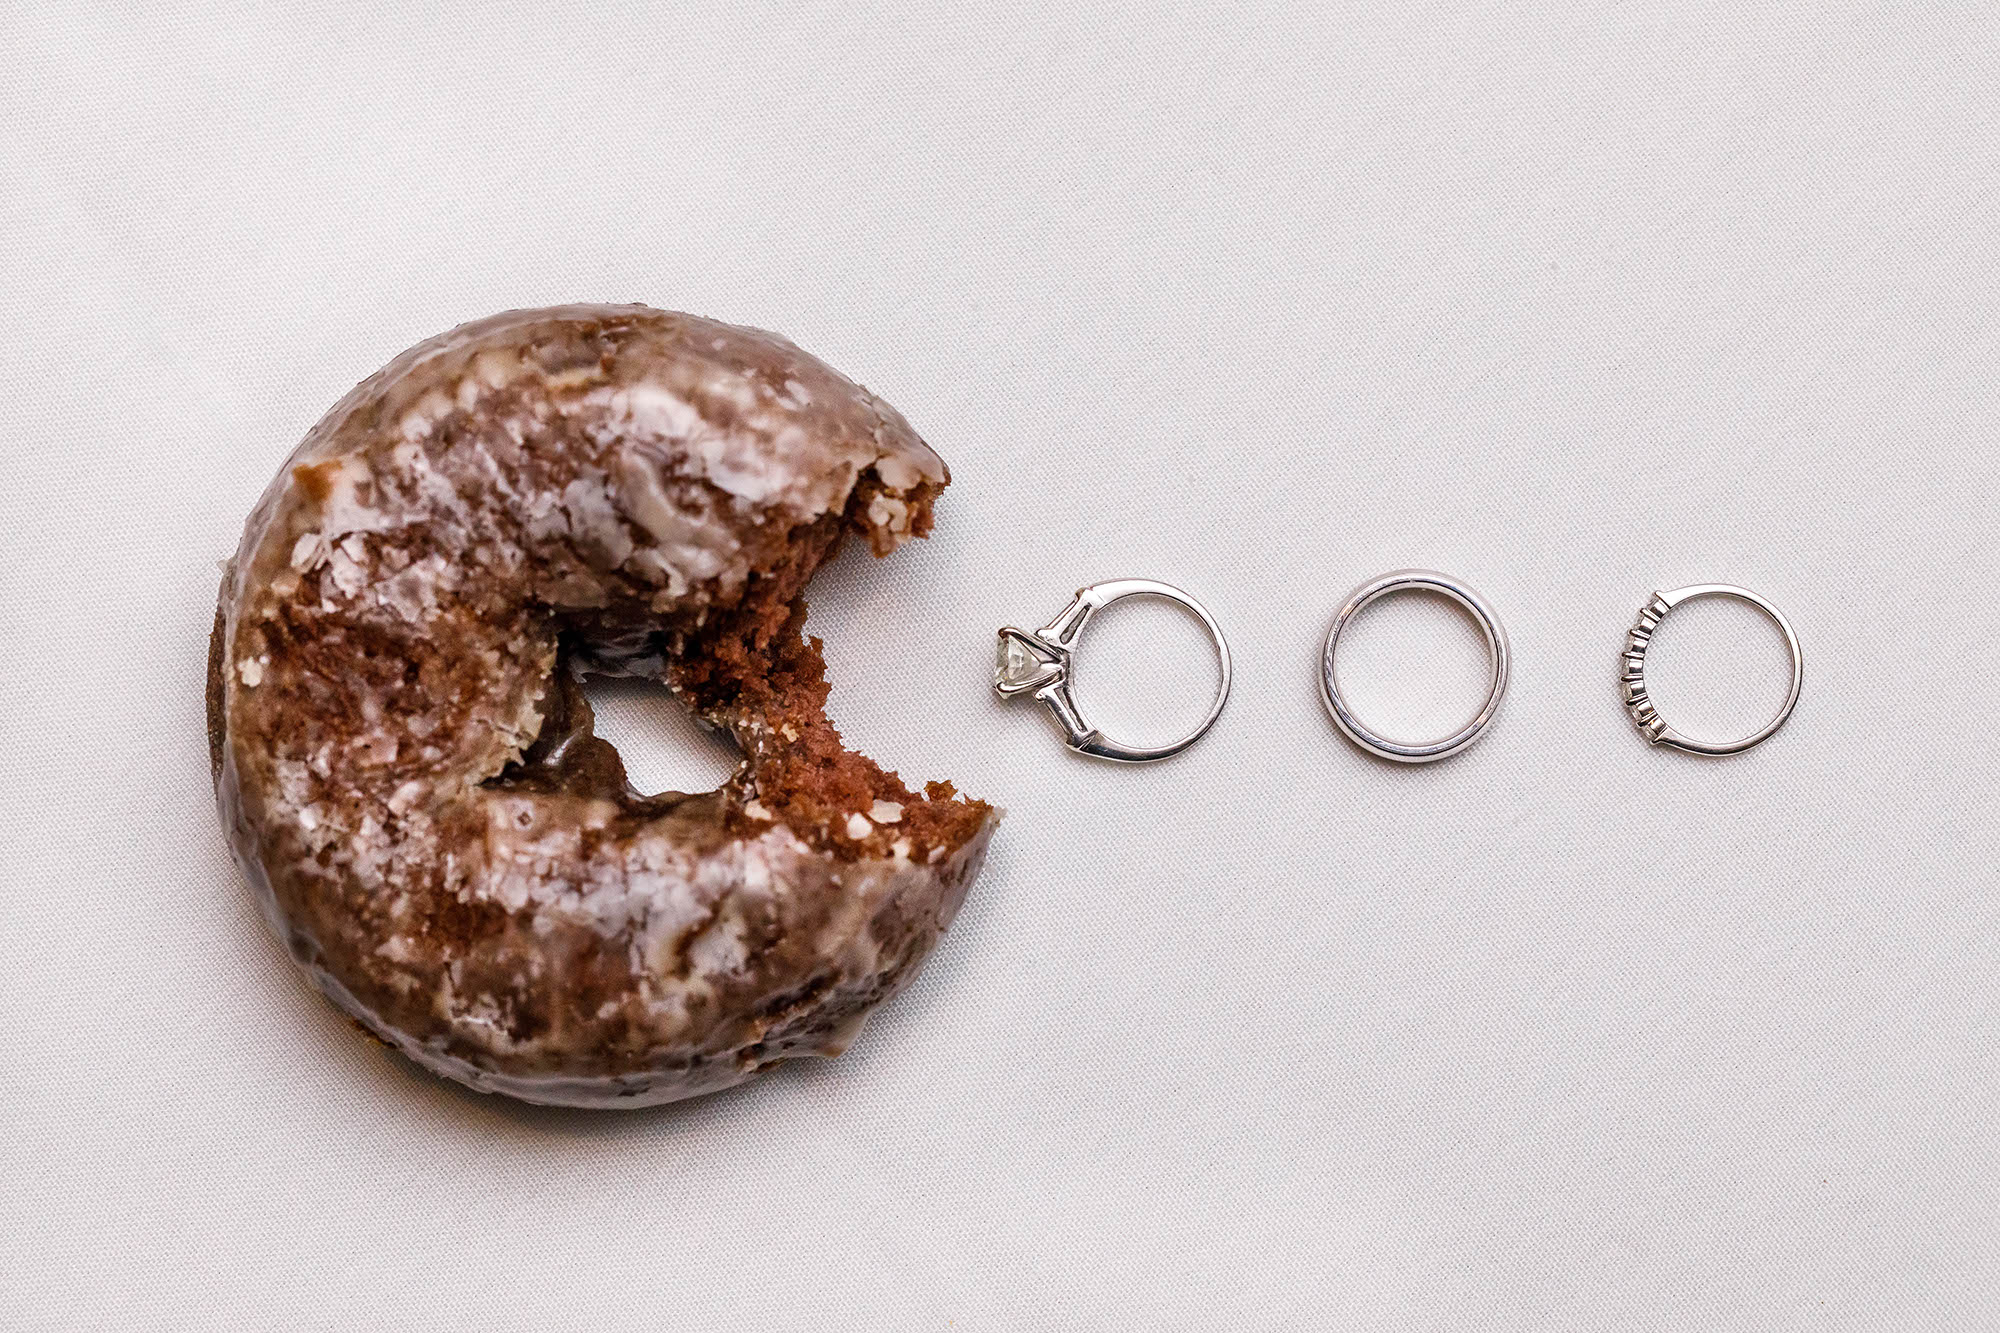 "A chocolate donut from Bakers ""eats"" an engagement ring and wedding band set pac-man style."